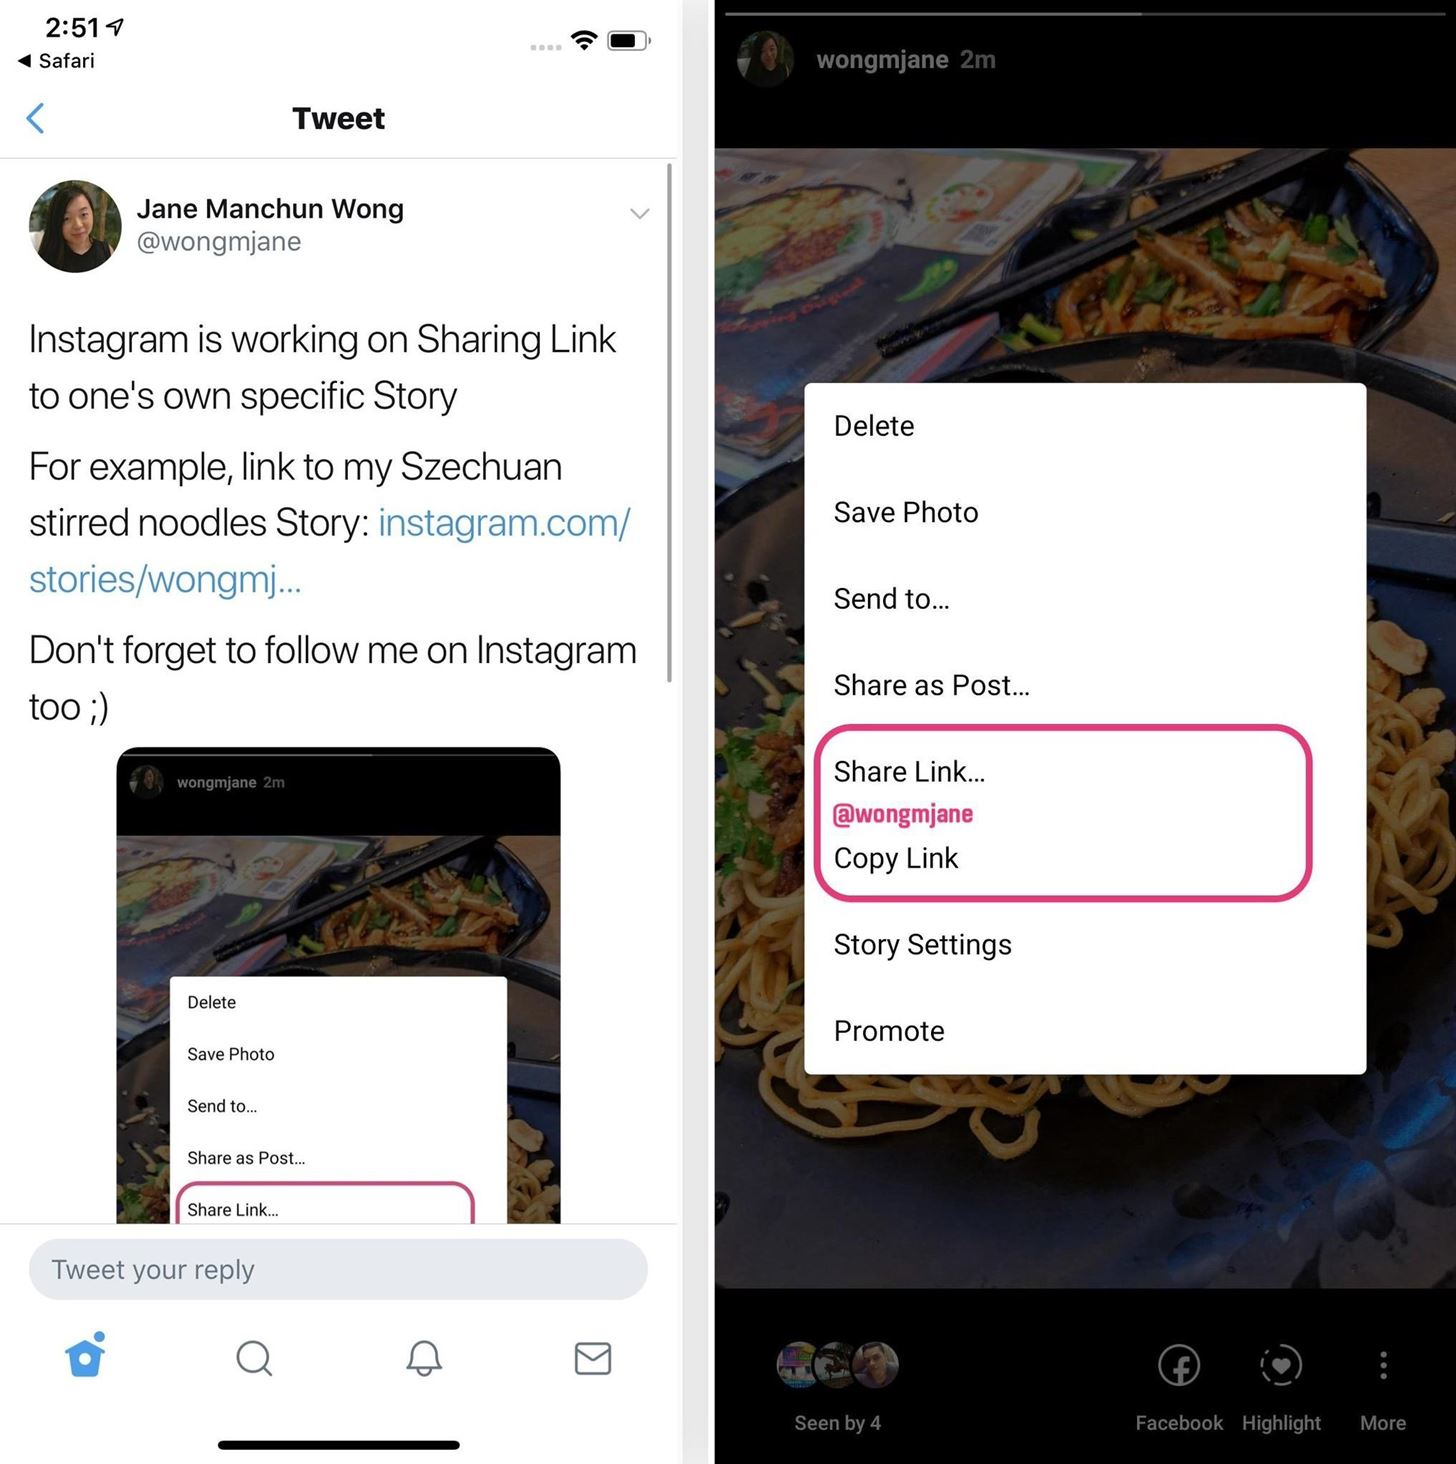 Coming Soon: Share a Link to Your Instagram Story on Other Platforms